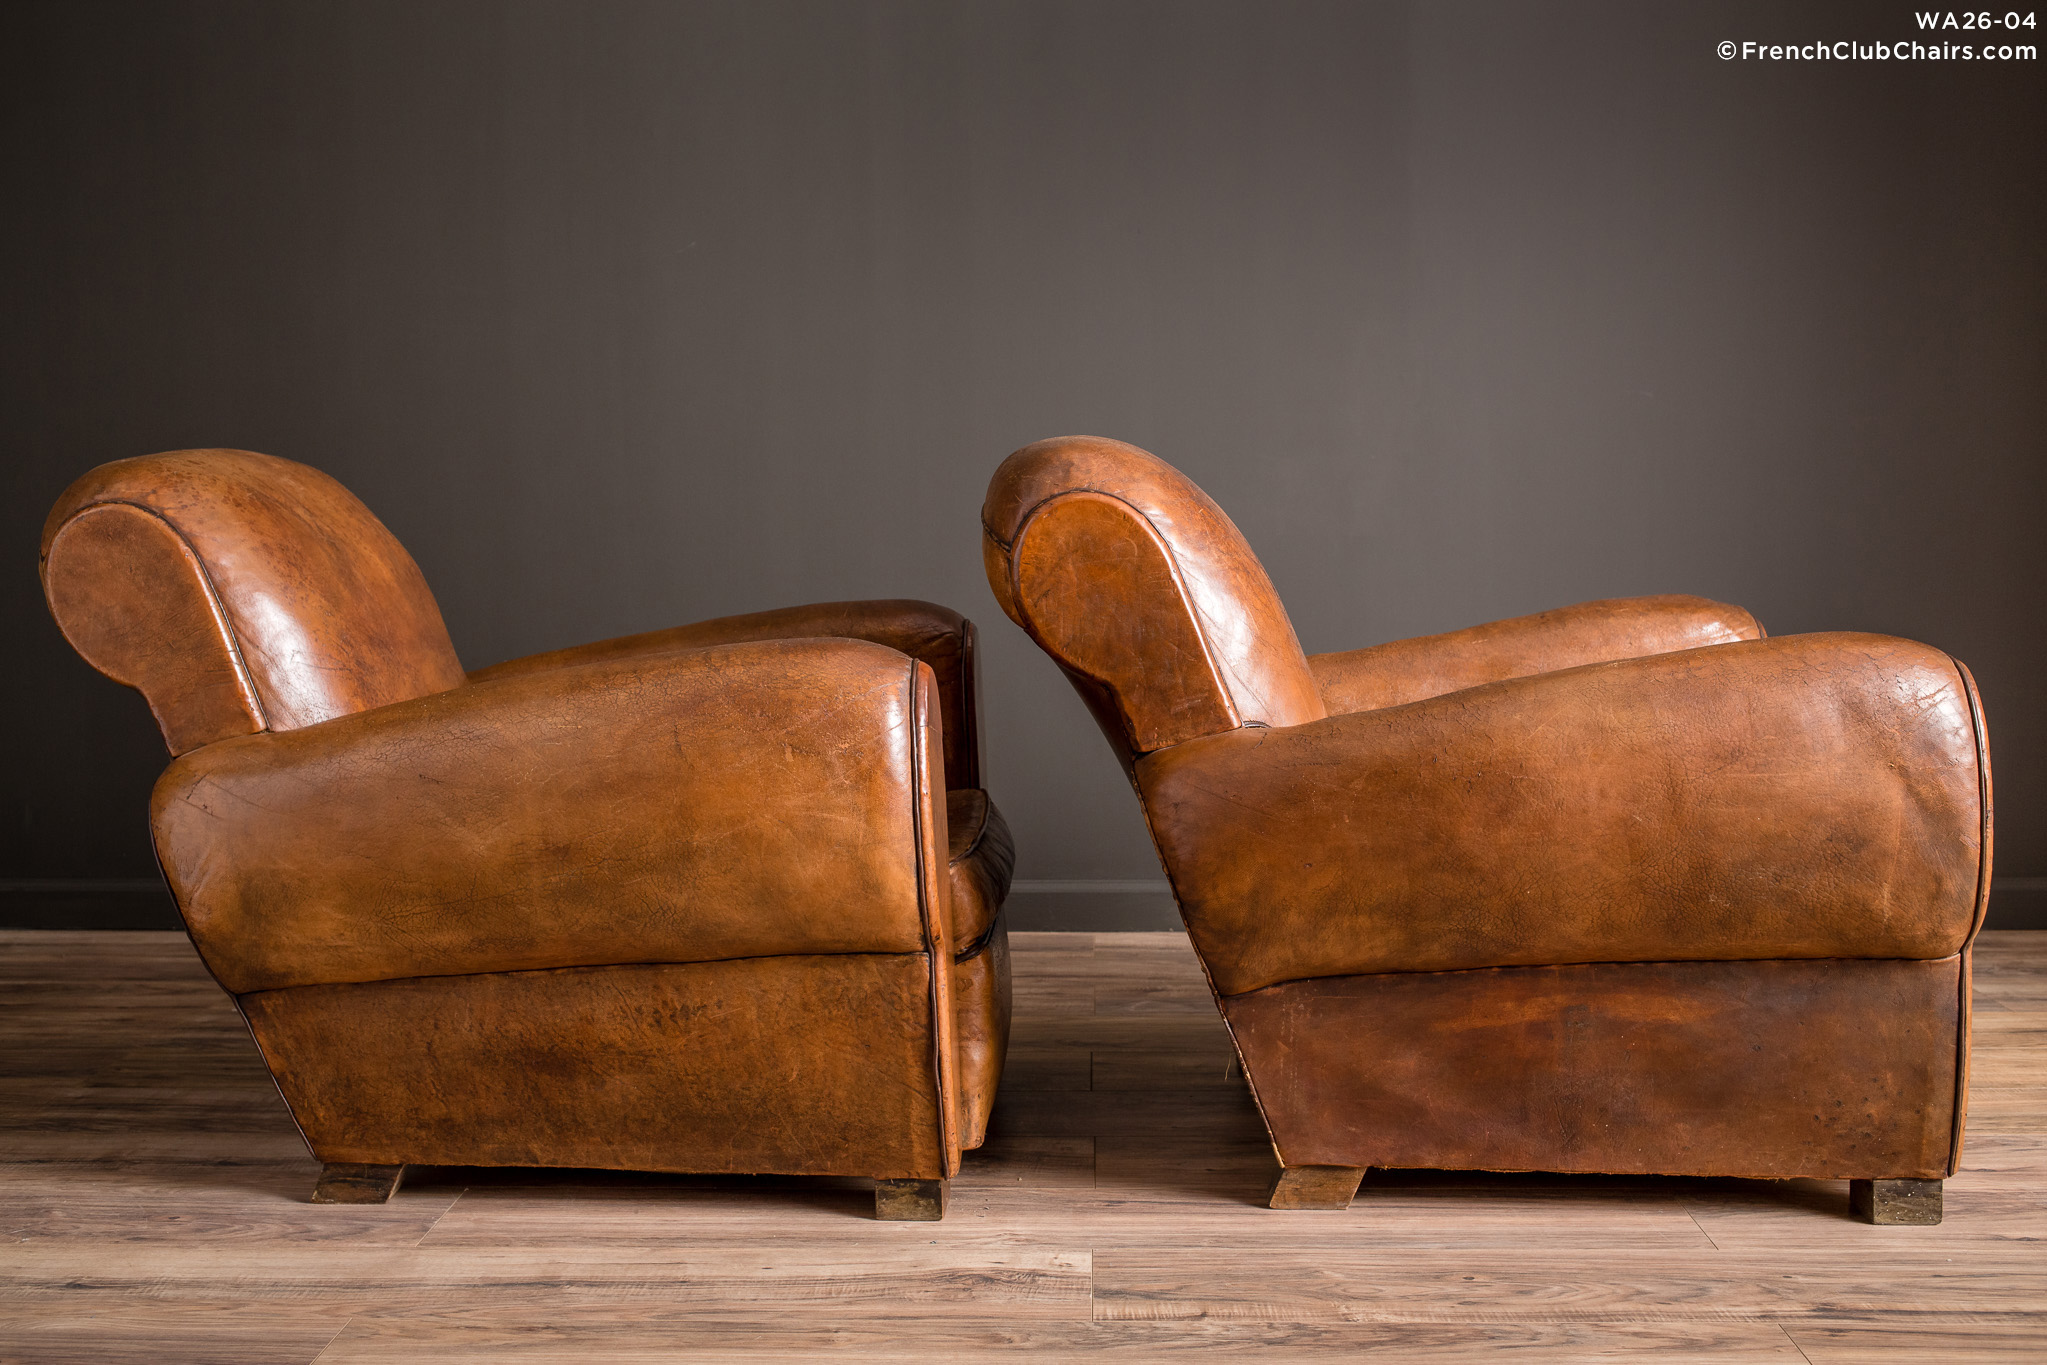 WA_26-04_La_Jura_Rollback_Ancien_Pair_R_3RT-v01-williams-antiks-leather-french-club-chair-wa_fcccom